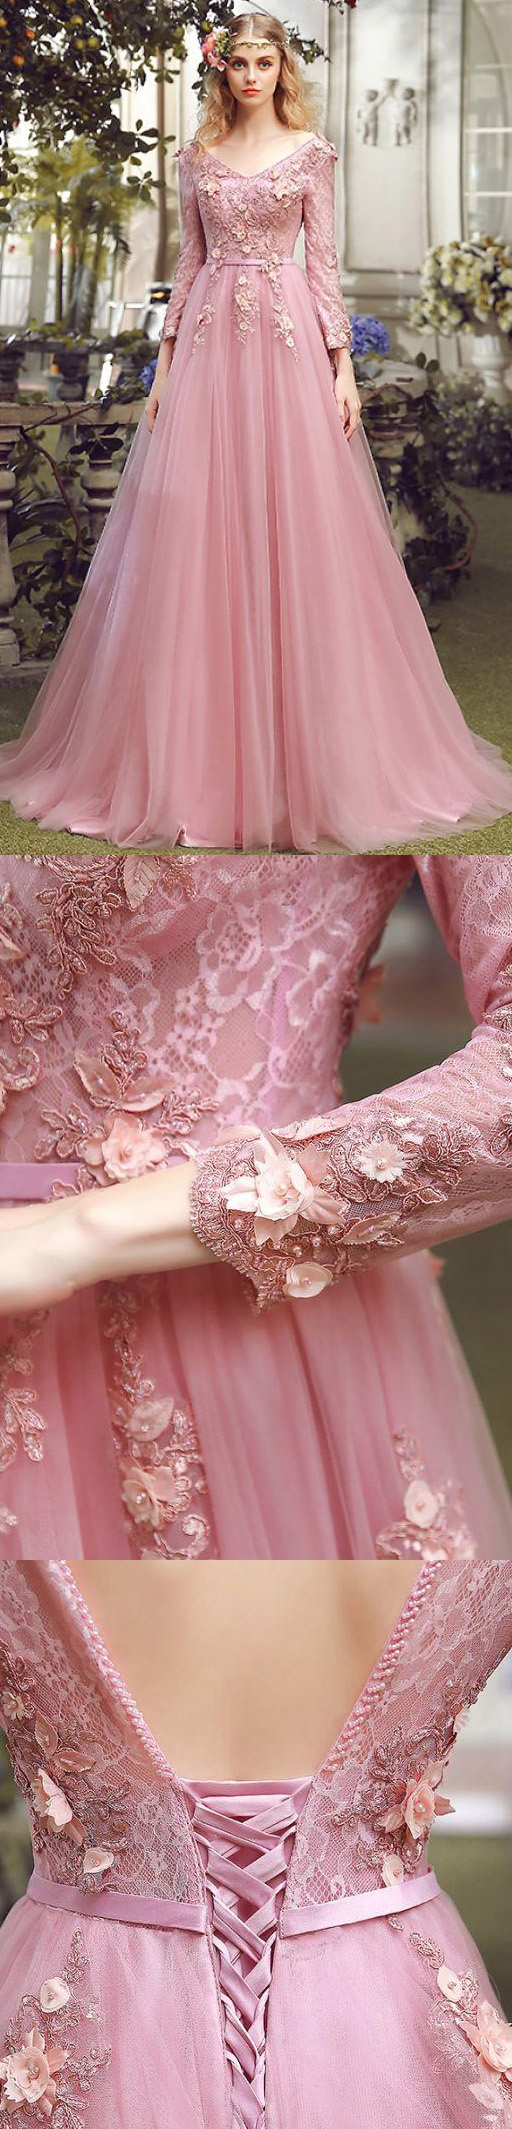 Long alineprincess evening dresses pink long sleeve with lace